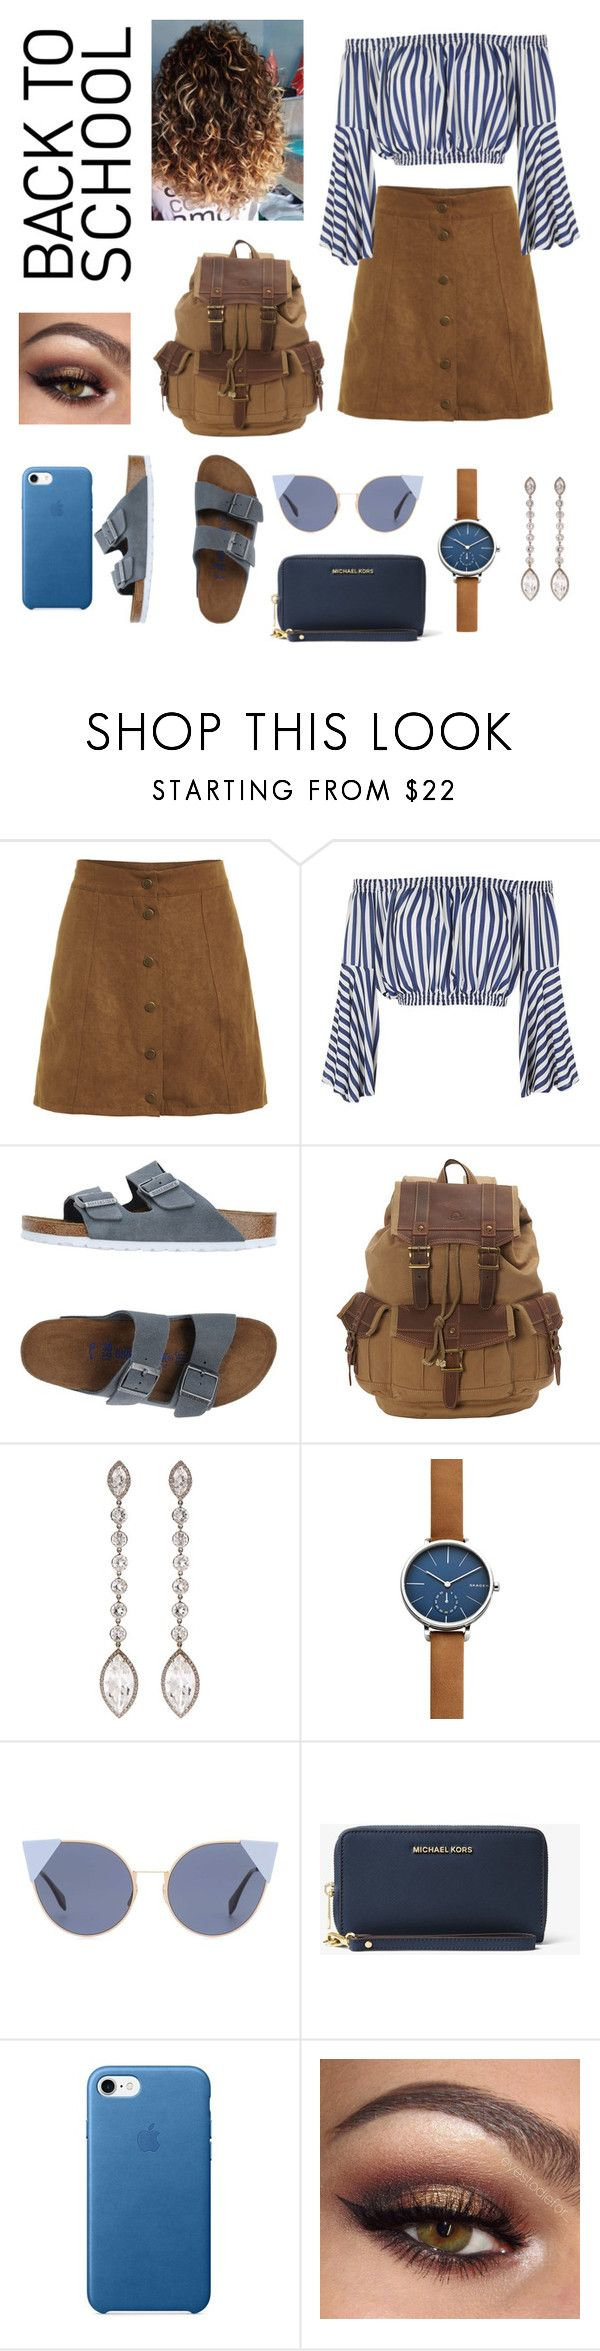 """Back to School! #backtoschool"" by cerny765 ❤ liked on Polyvore featuring Love, Birkenstock, TSD, SUSAN FOSTER, Skagen, Fendi and MICHAEL Michael Kors"